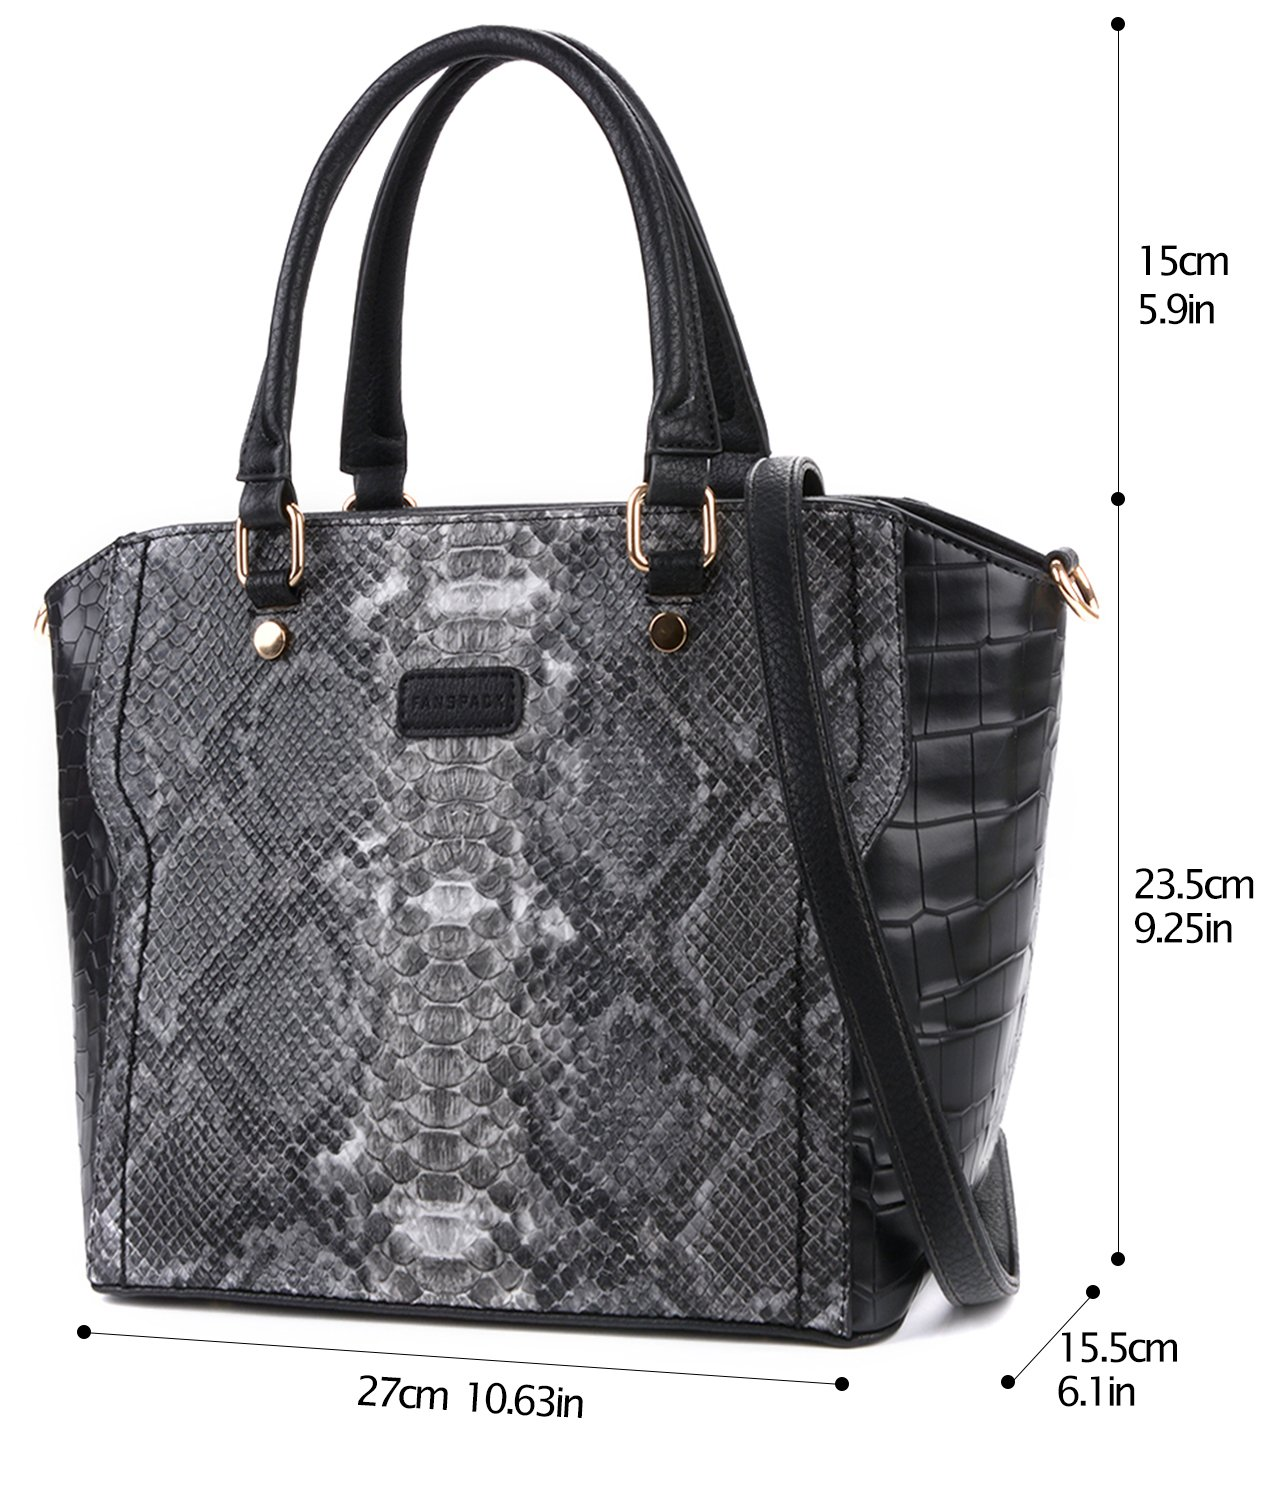 Handbags for Women, Fanspack Top Handle Satchel Handbags Boa Pattern PU Leather Tote Bag Crossbody Shoulder Bag Purse by Fanspack (Image #3)